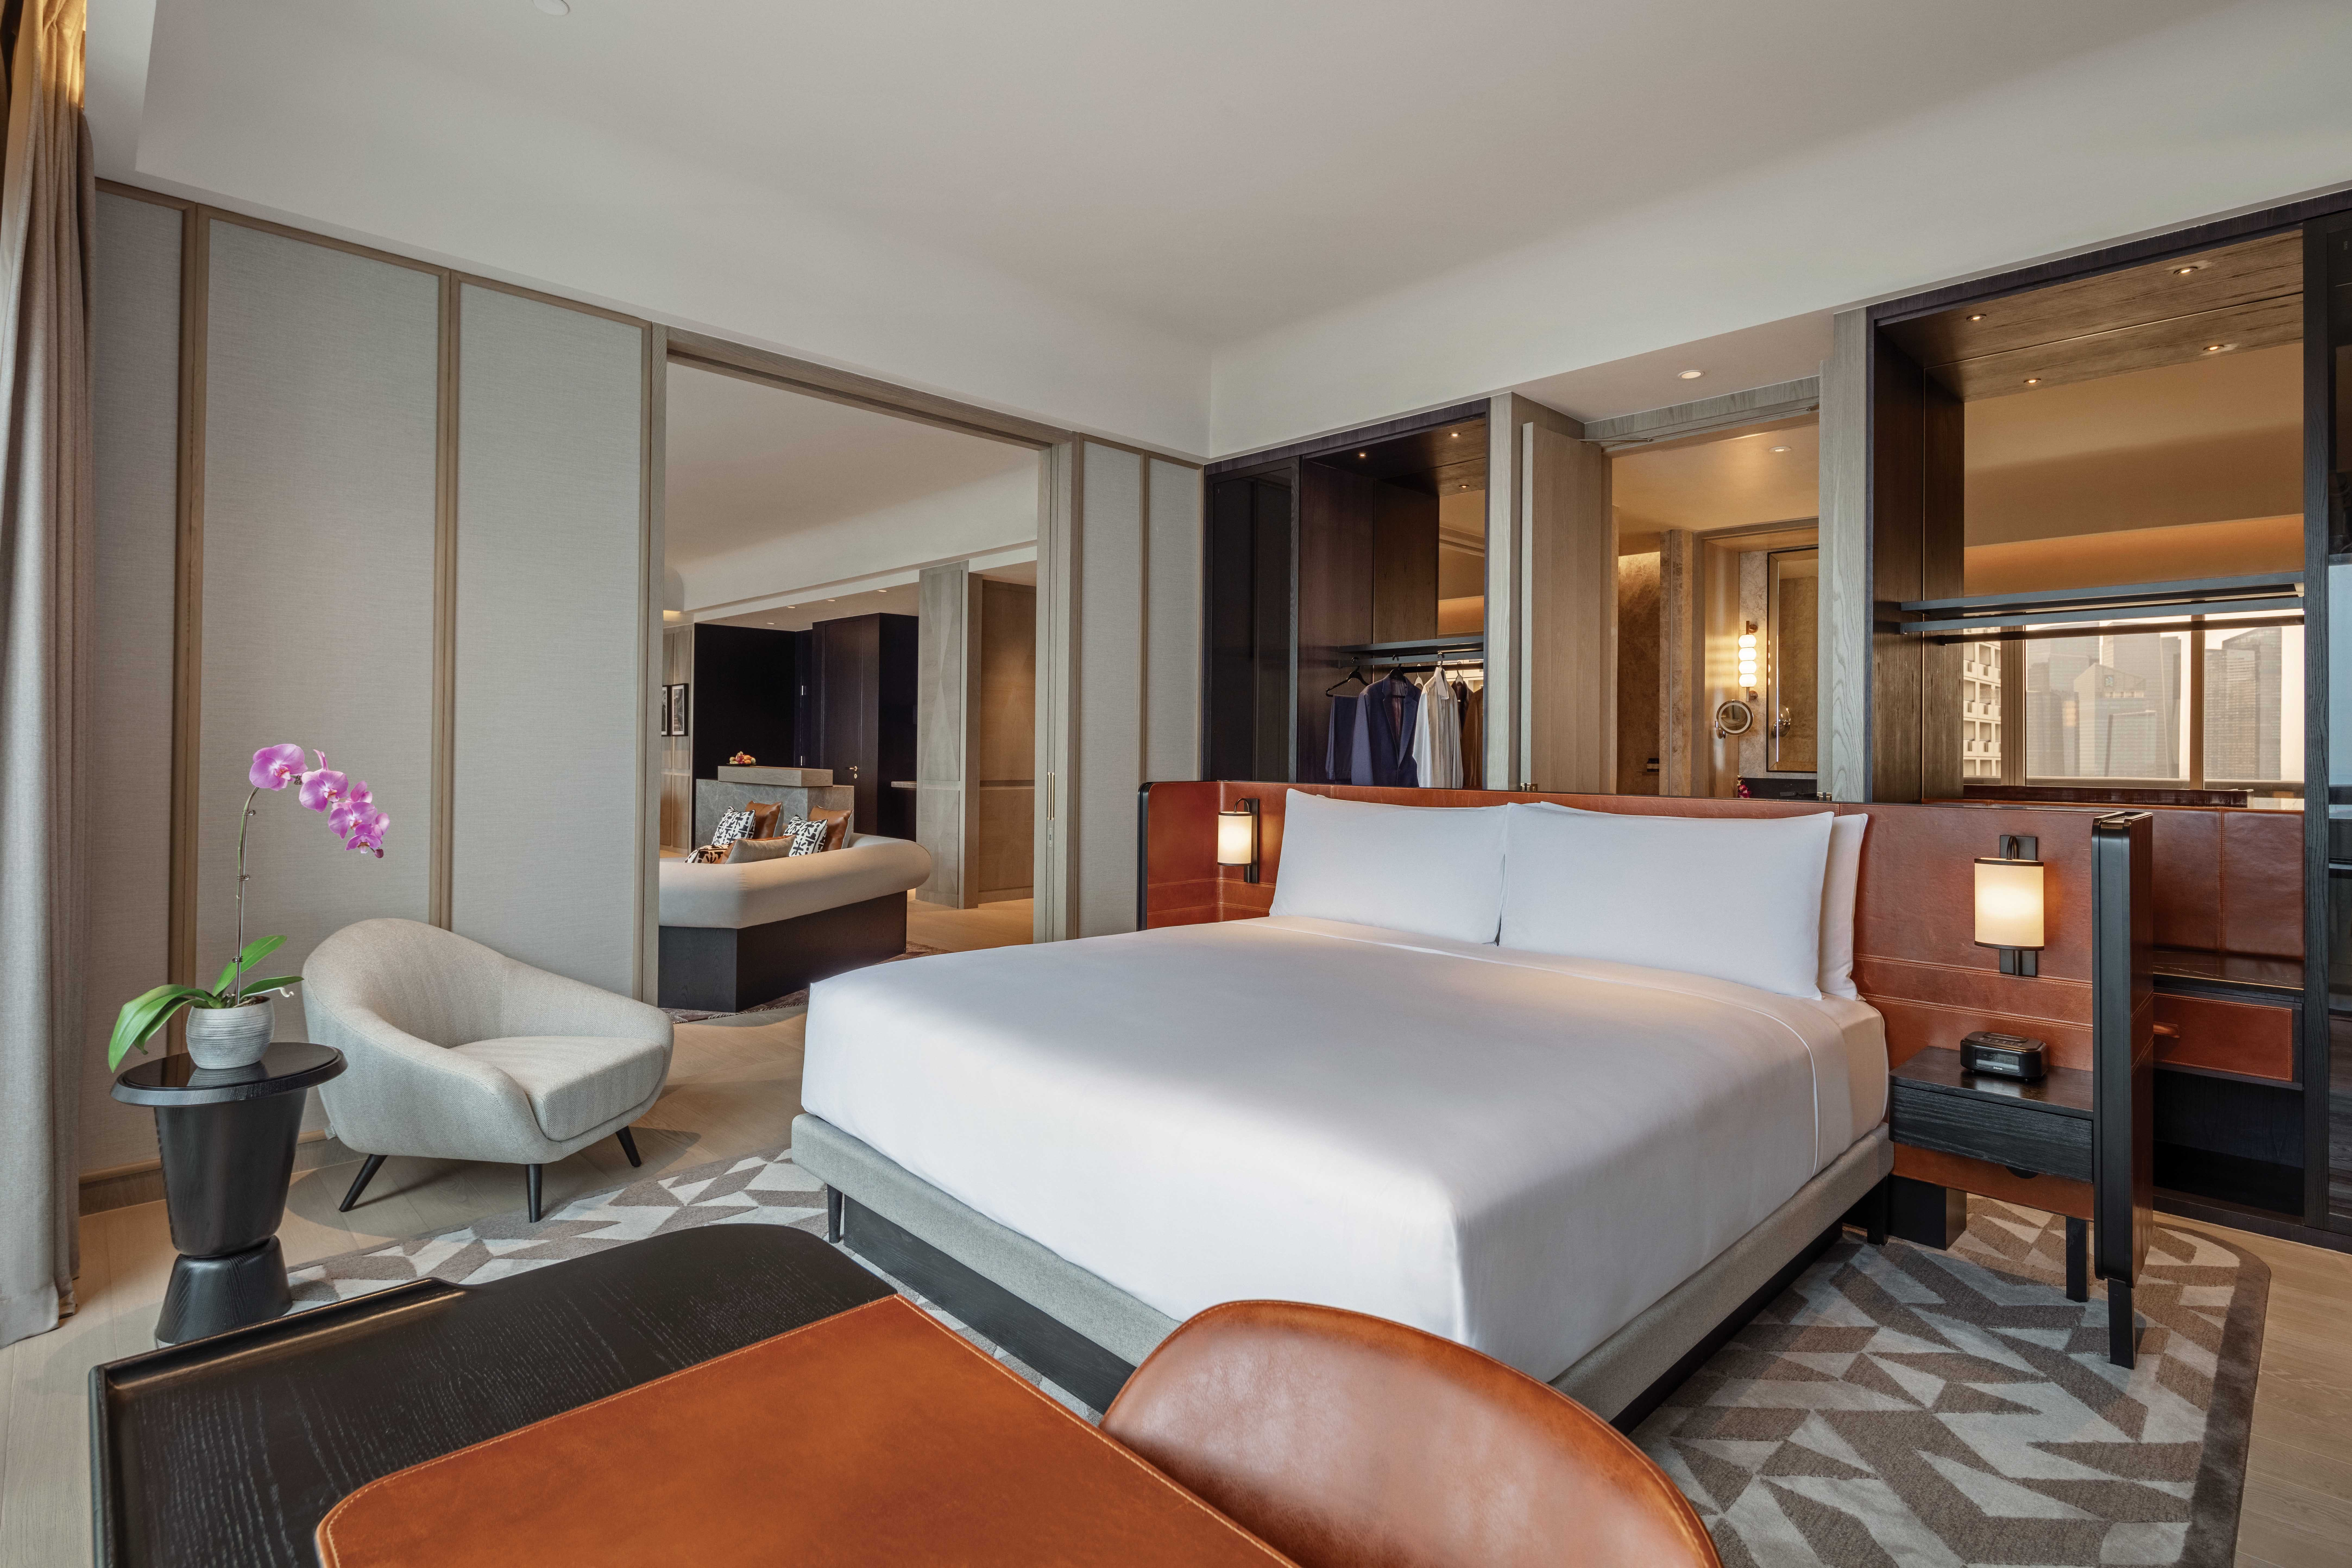 Review: Fairmont Singapore raises the bar with a luxurious redesign both inside and out